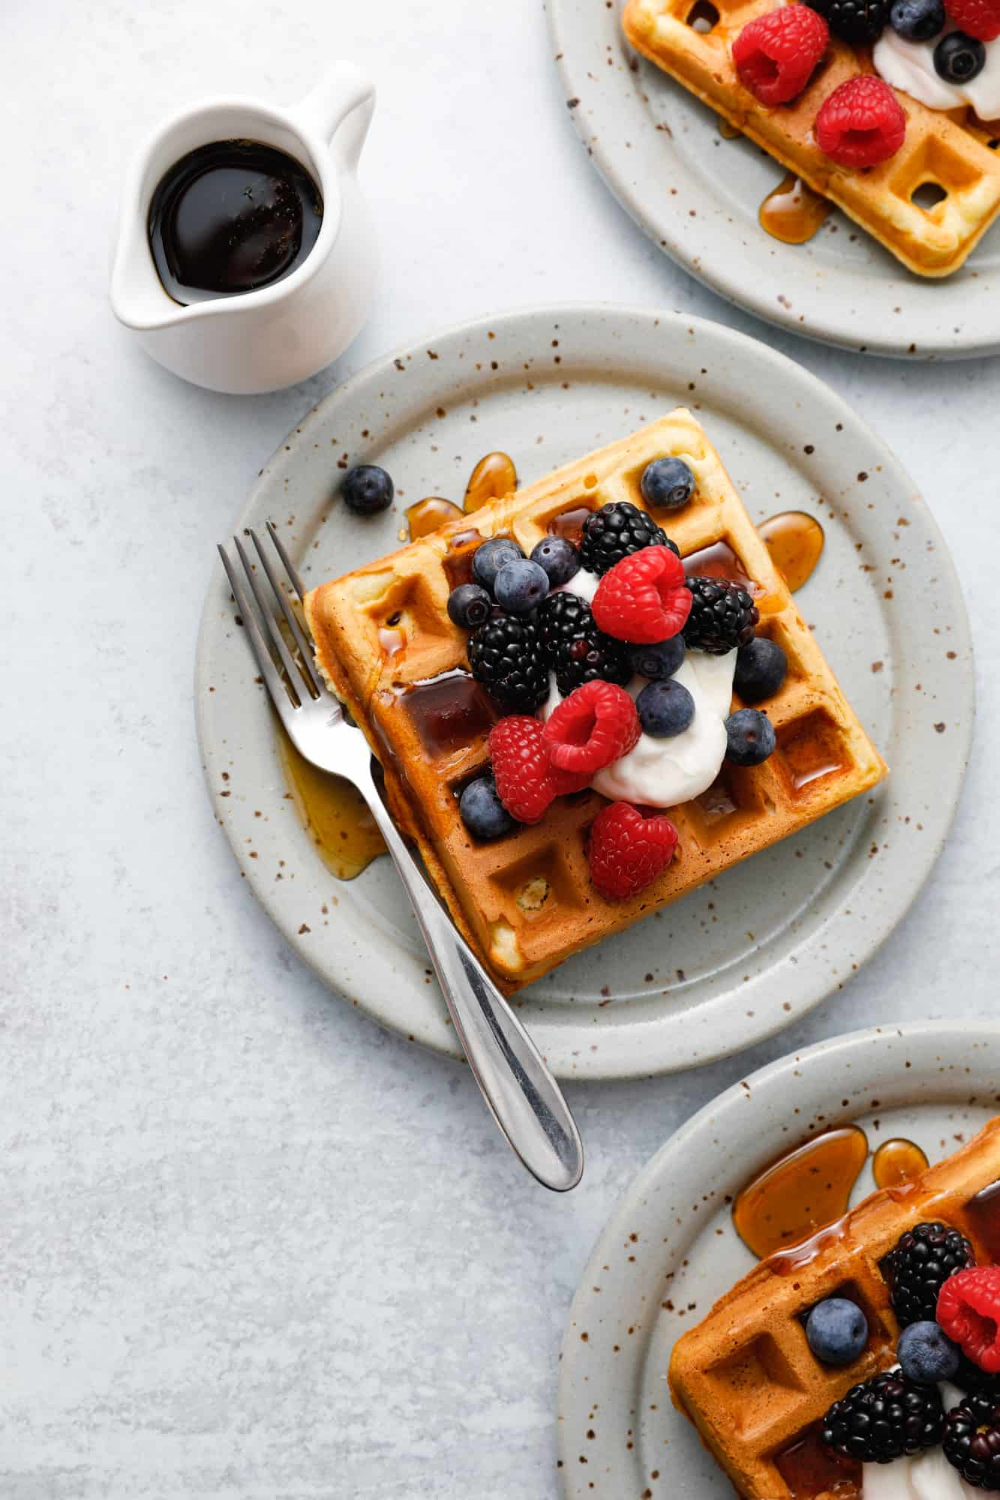 Fluffy Sour Cream Waffles The Dinner Bell Recipe In 2020 Easy Homemade Waffle Homemade Waffle Recipe Easy Waffles Recipe Homemade